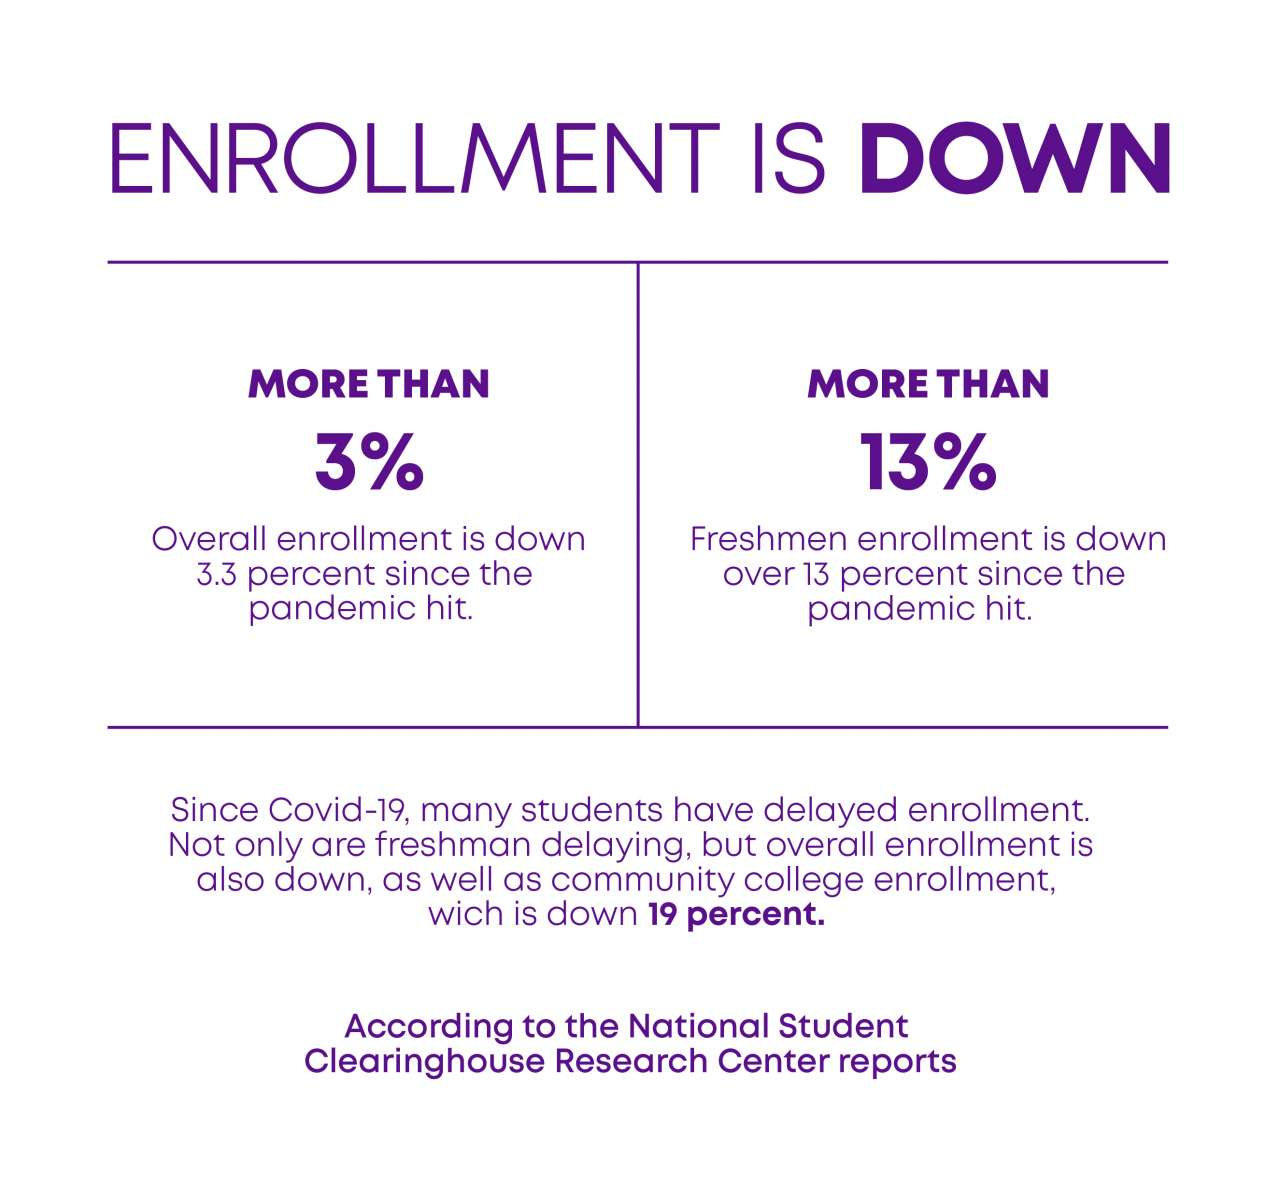 Higher education enrollment is down since the pandemic.